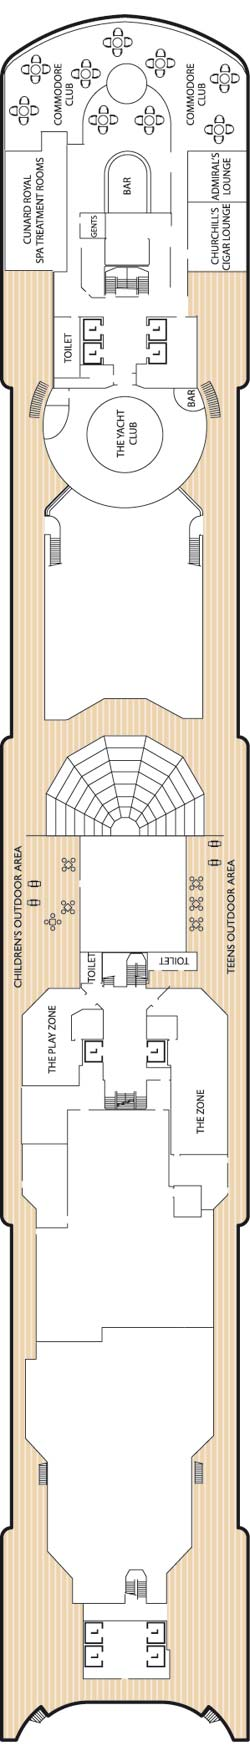 Deck Ten Deck Plan